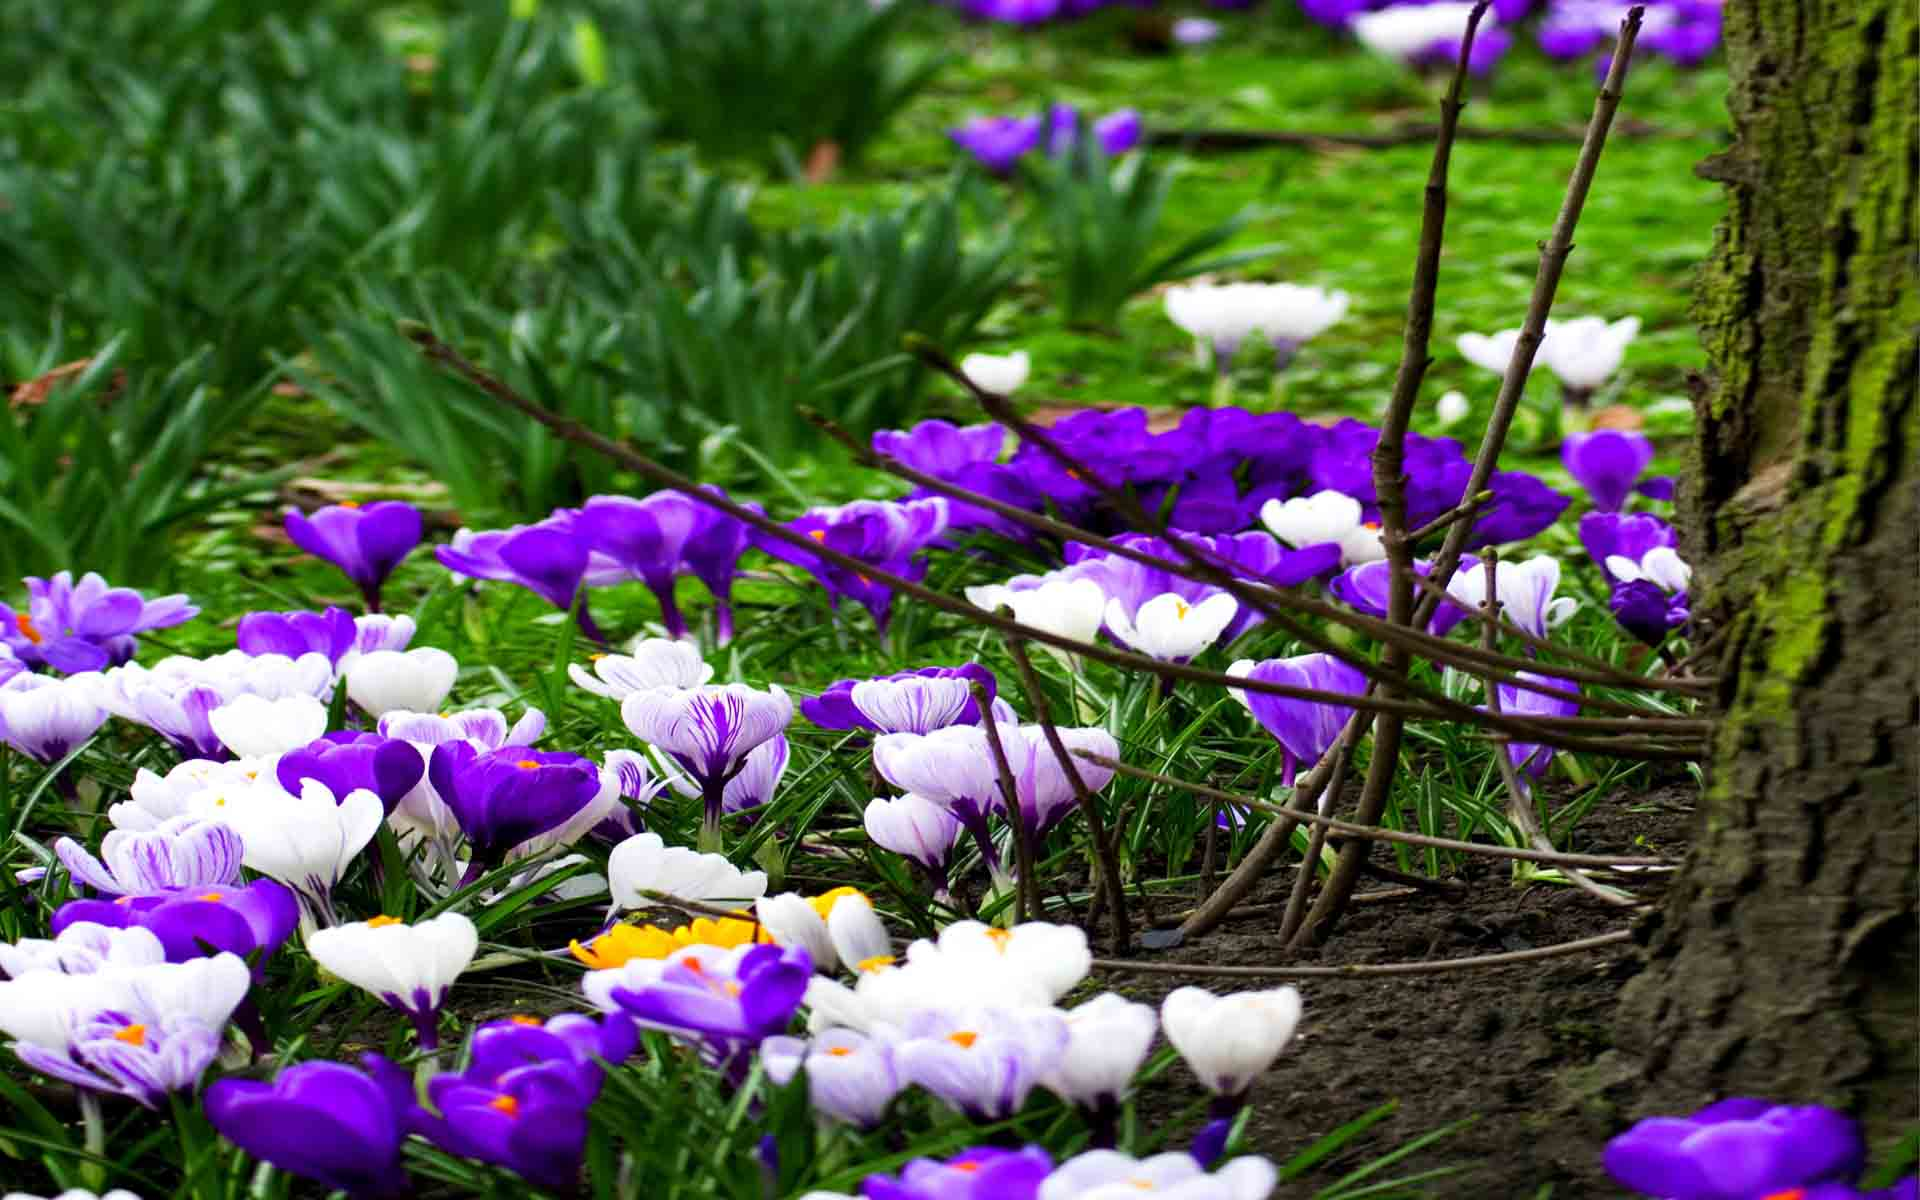 Spring flower pictures download library Spring Wallpaper Free Download library